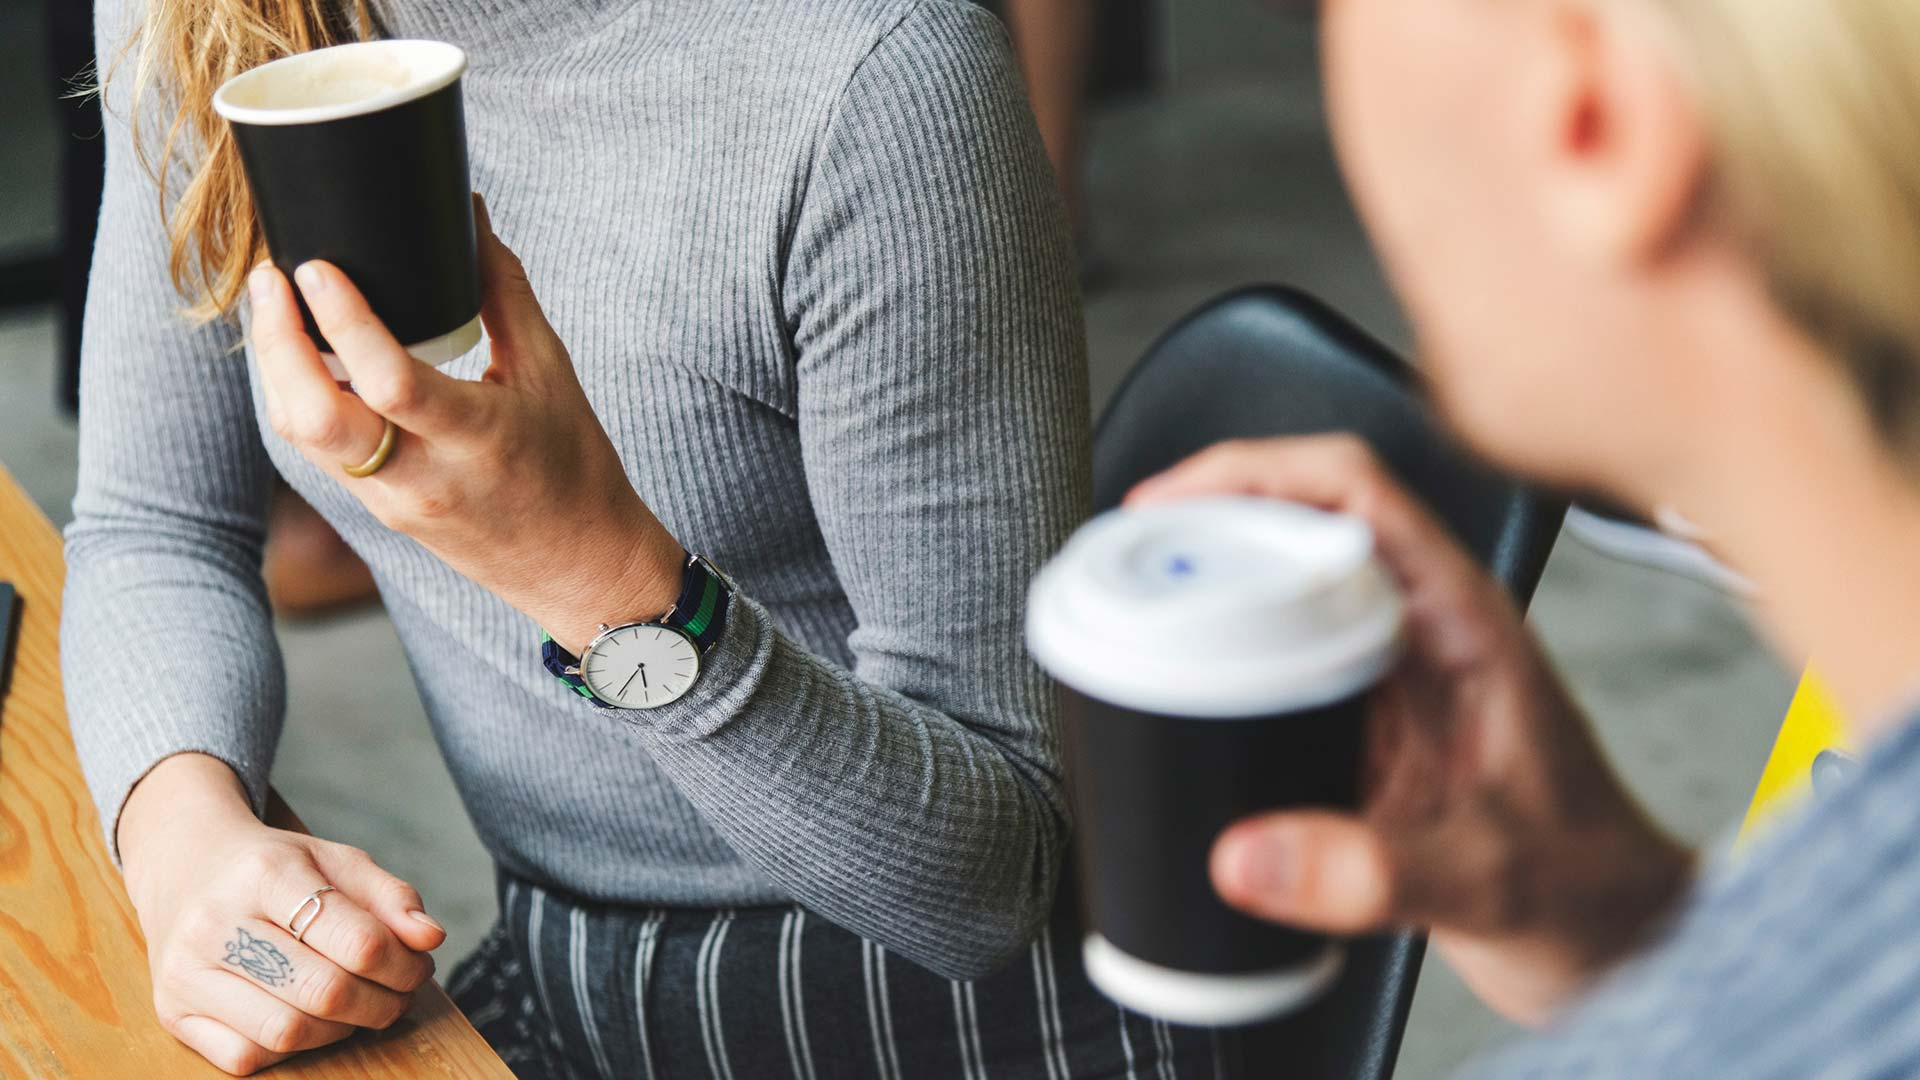 Ladies talking with coffee cups in hands